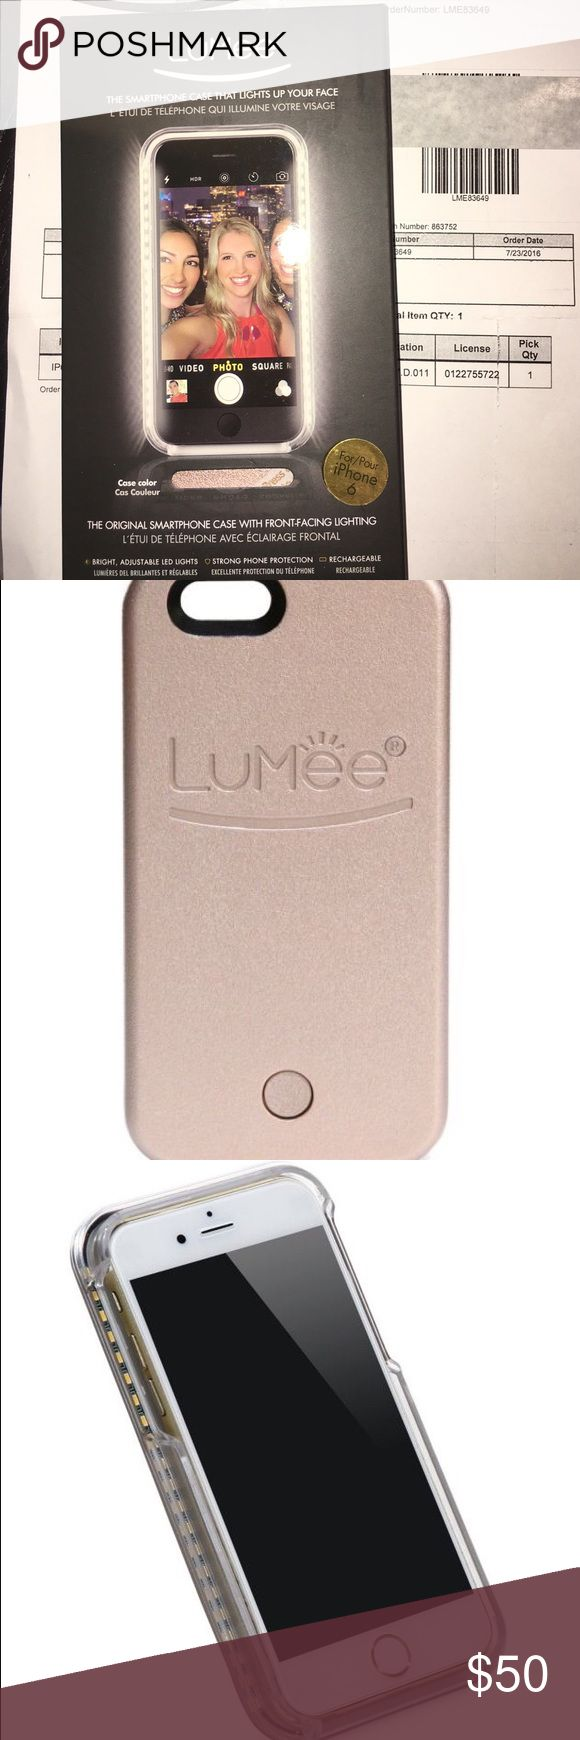 Brand new Lumee smartphone case for iPhone 6 Brand new still in the box Lumee phone case in rose. Bought this as an impulse purchase and didn't open it bc I prefer the wallet phone cases. My sister has this and it works great to take the perfect selfie! All the celebs love it! This is for an iPhone 6. Will taxes and shipping it cost $70. Selling cheap for quick sale. Make an offer  Accessories Phone Cases